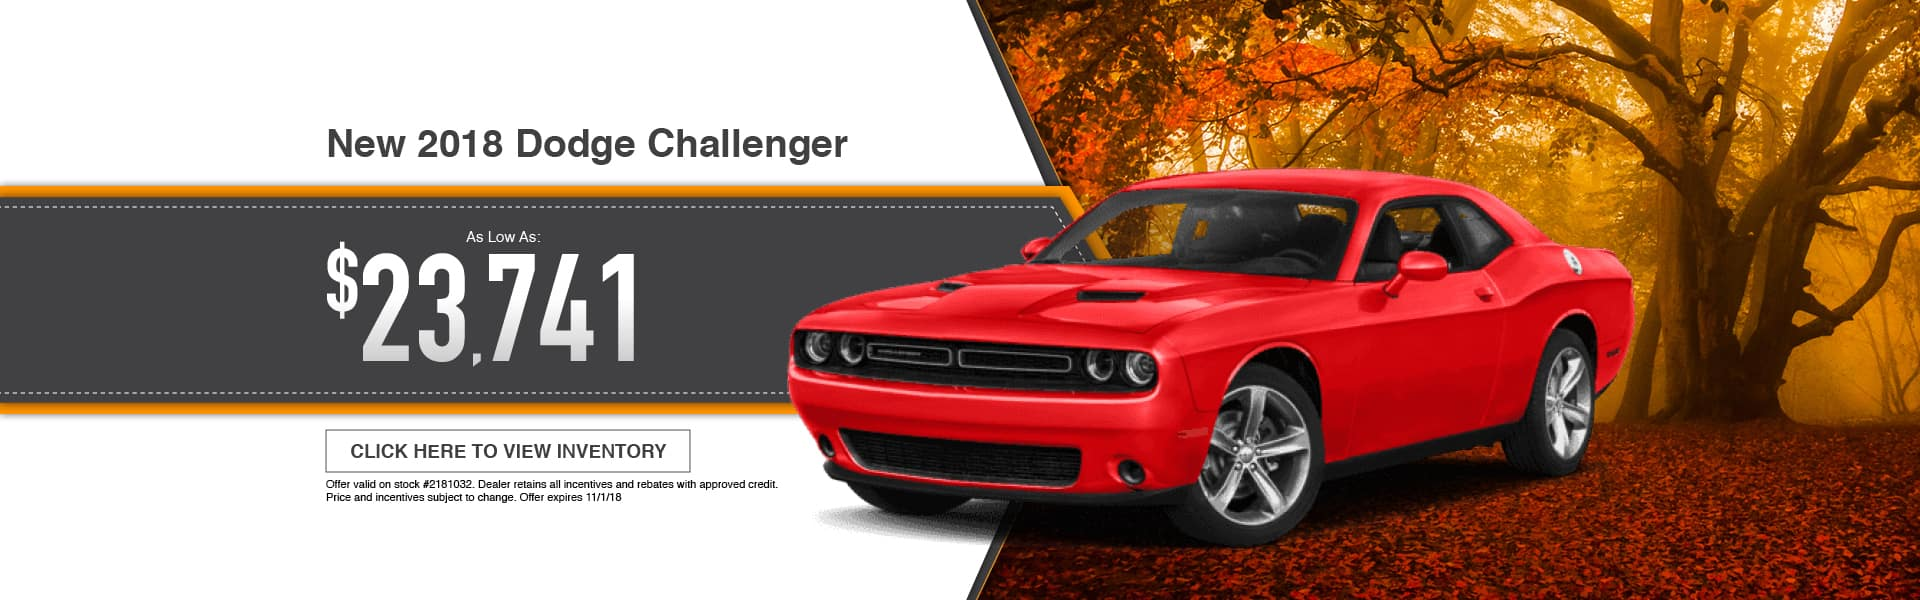 2018 Dodge Challenger Special at Thomson Dodge in Thomson, GA